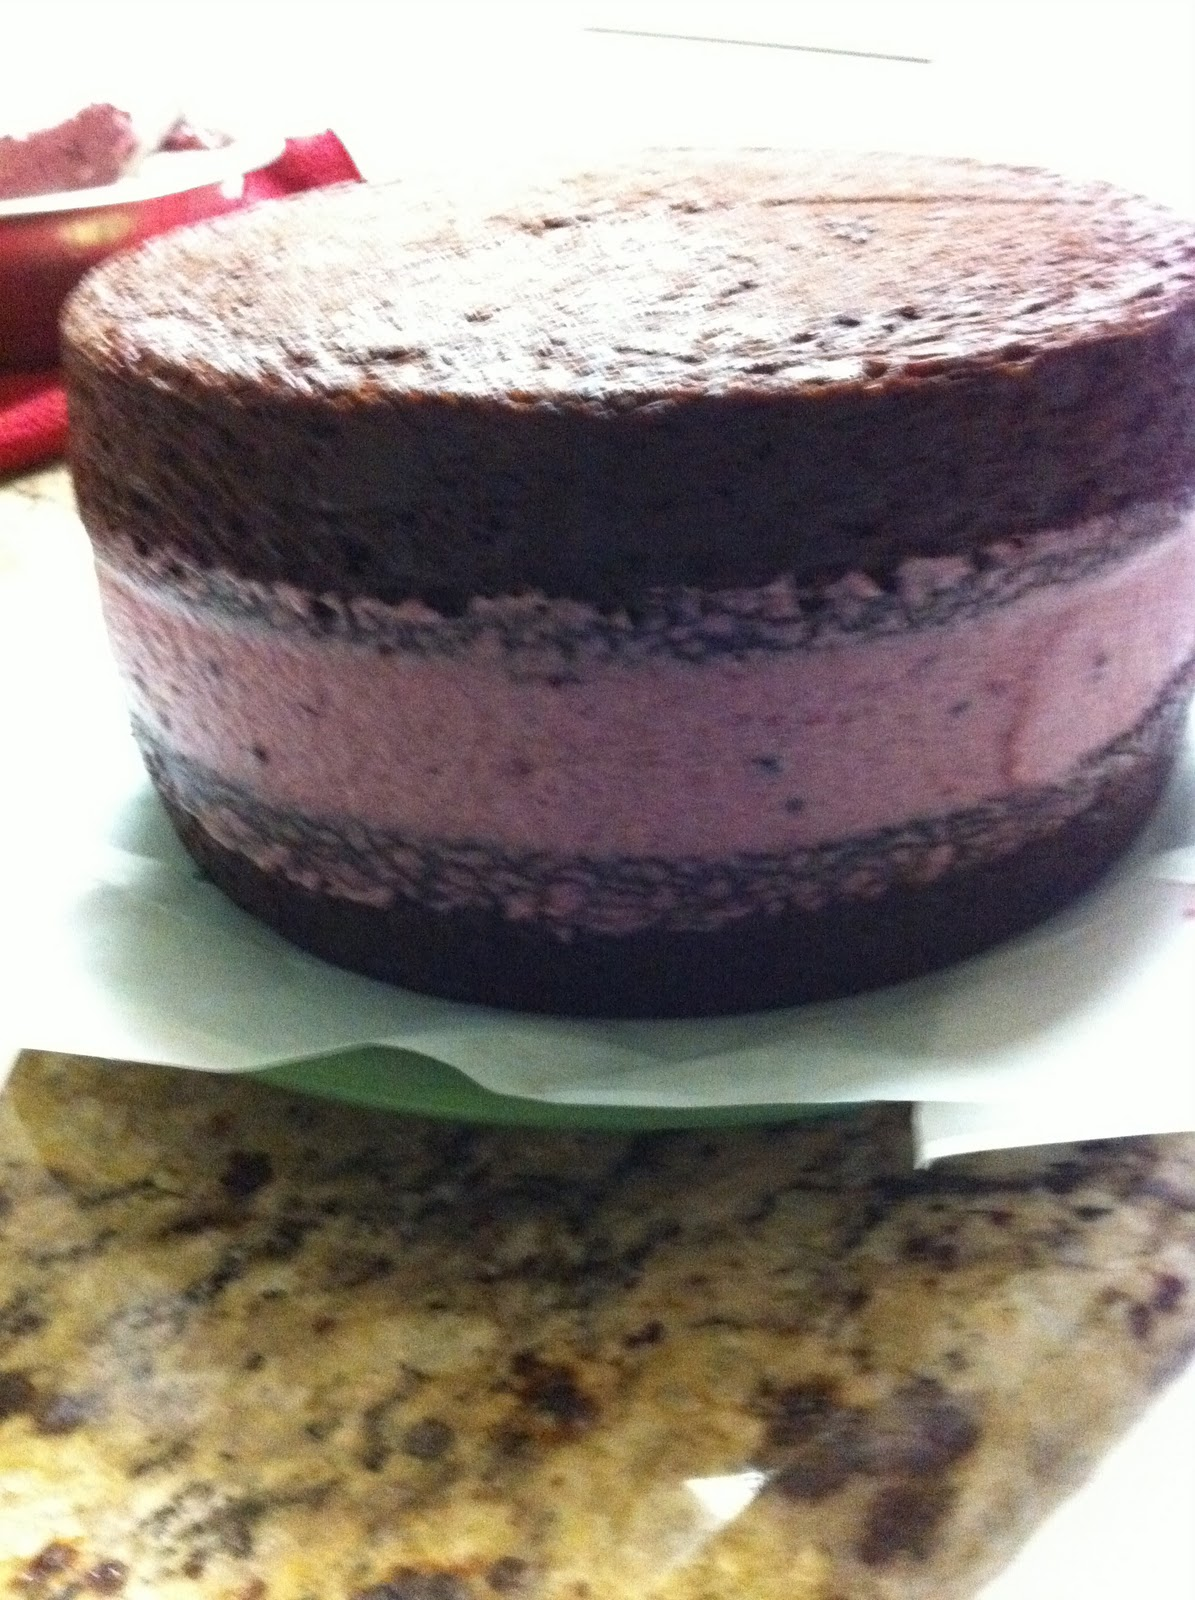 ... Layer Chocolate Cake with Blackberry Jam Filling and Chocolate Creme